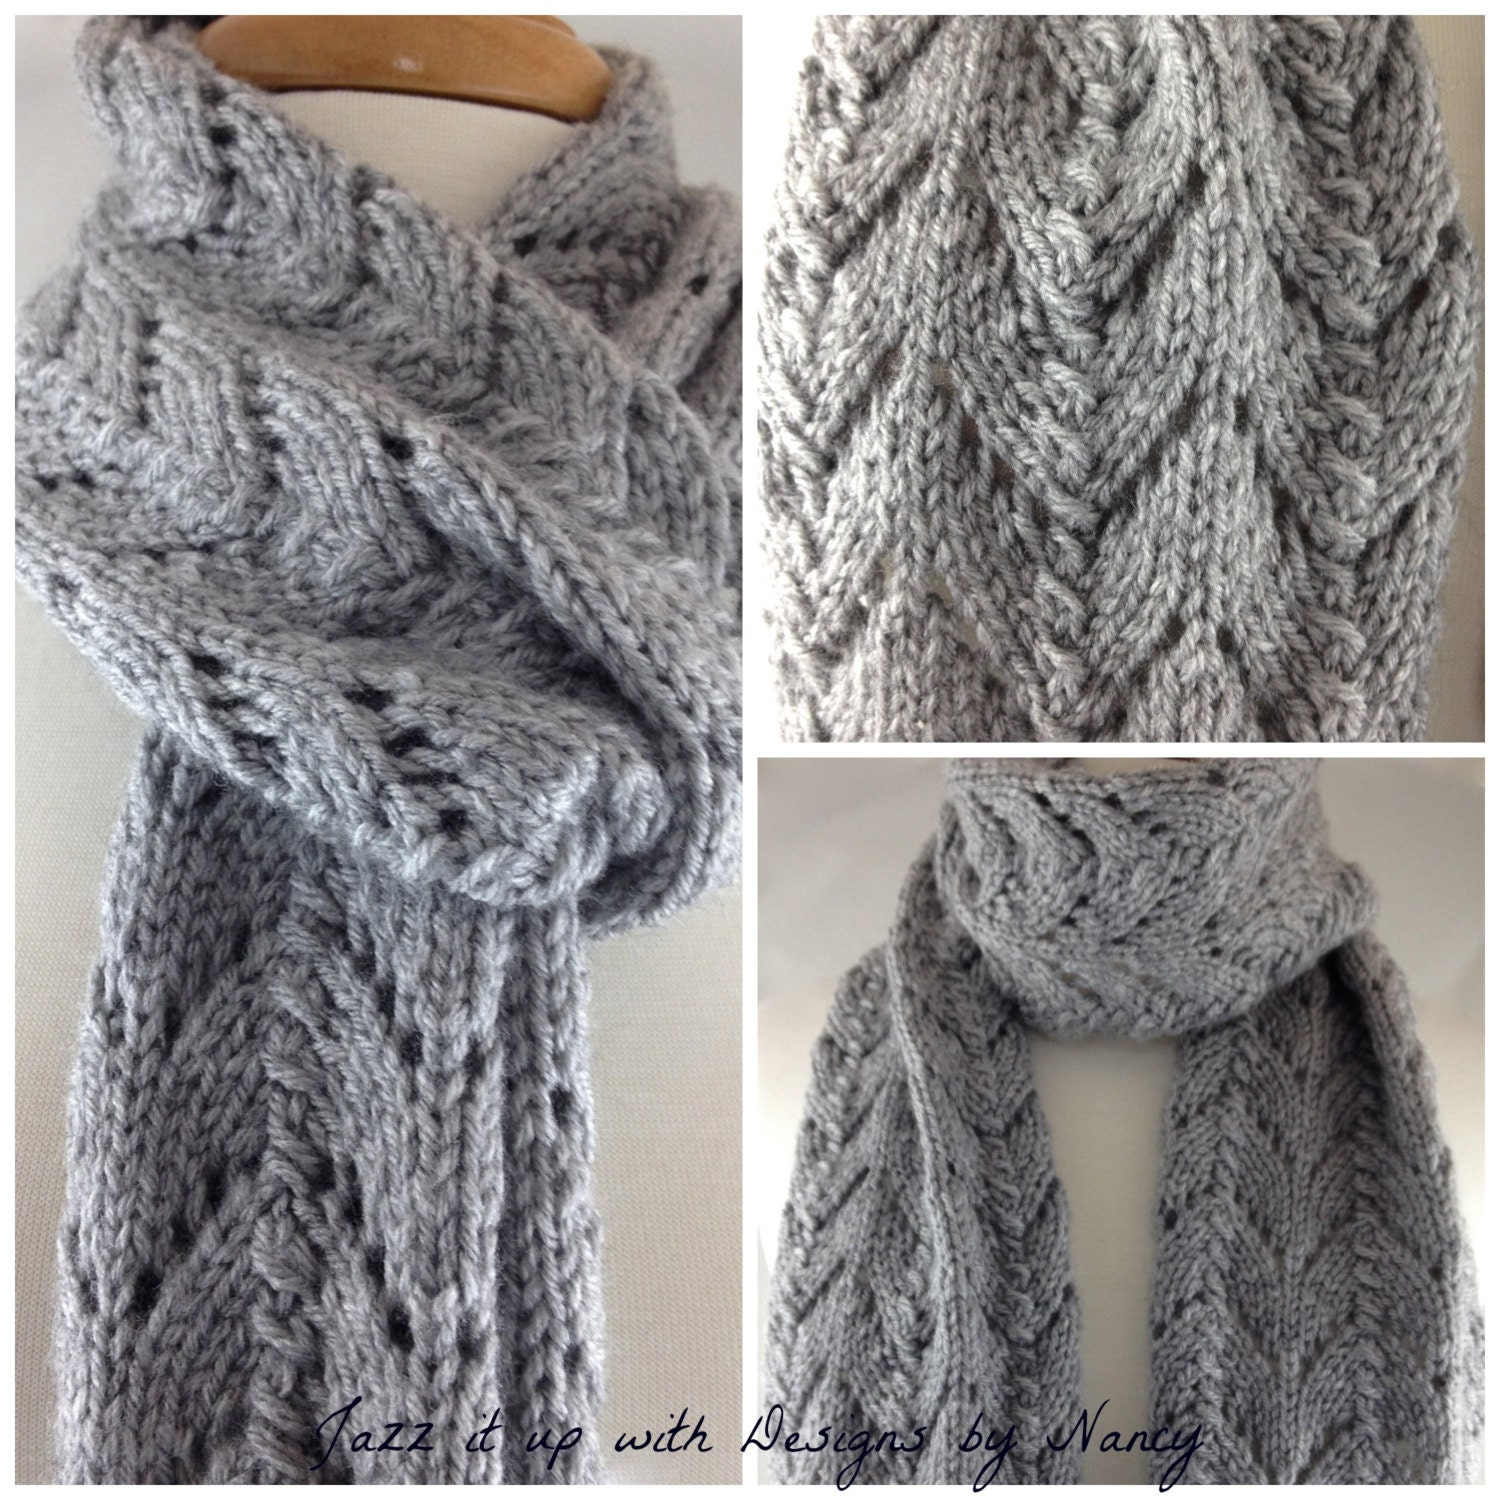 Elegant Hand knit Lacy Extra Long Scarf by JazzitUpwithDesigns